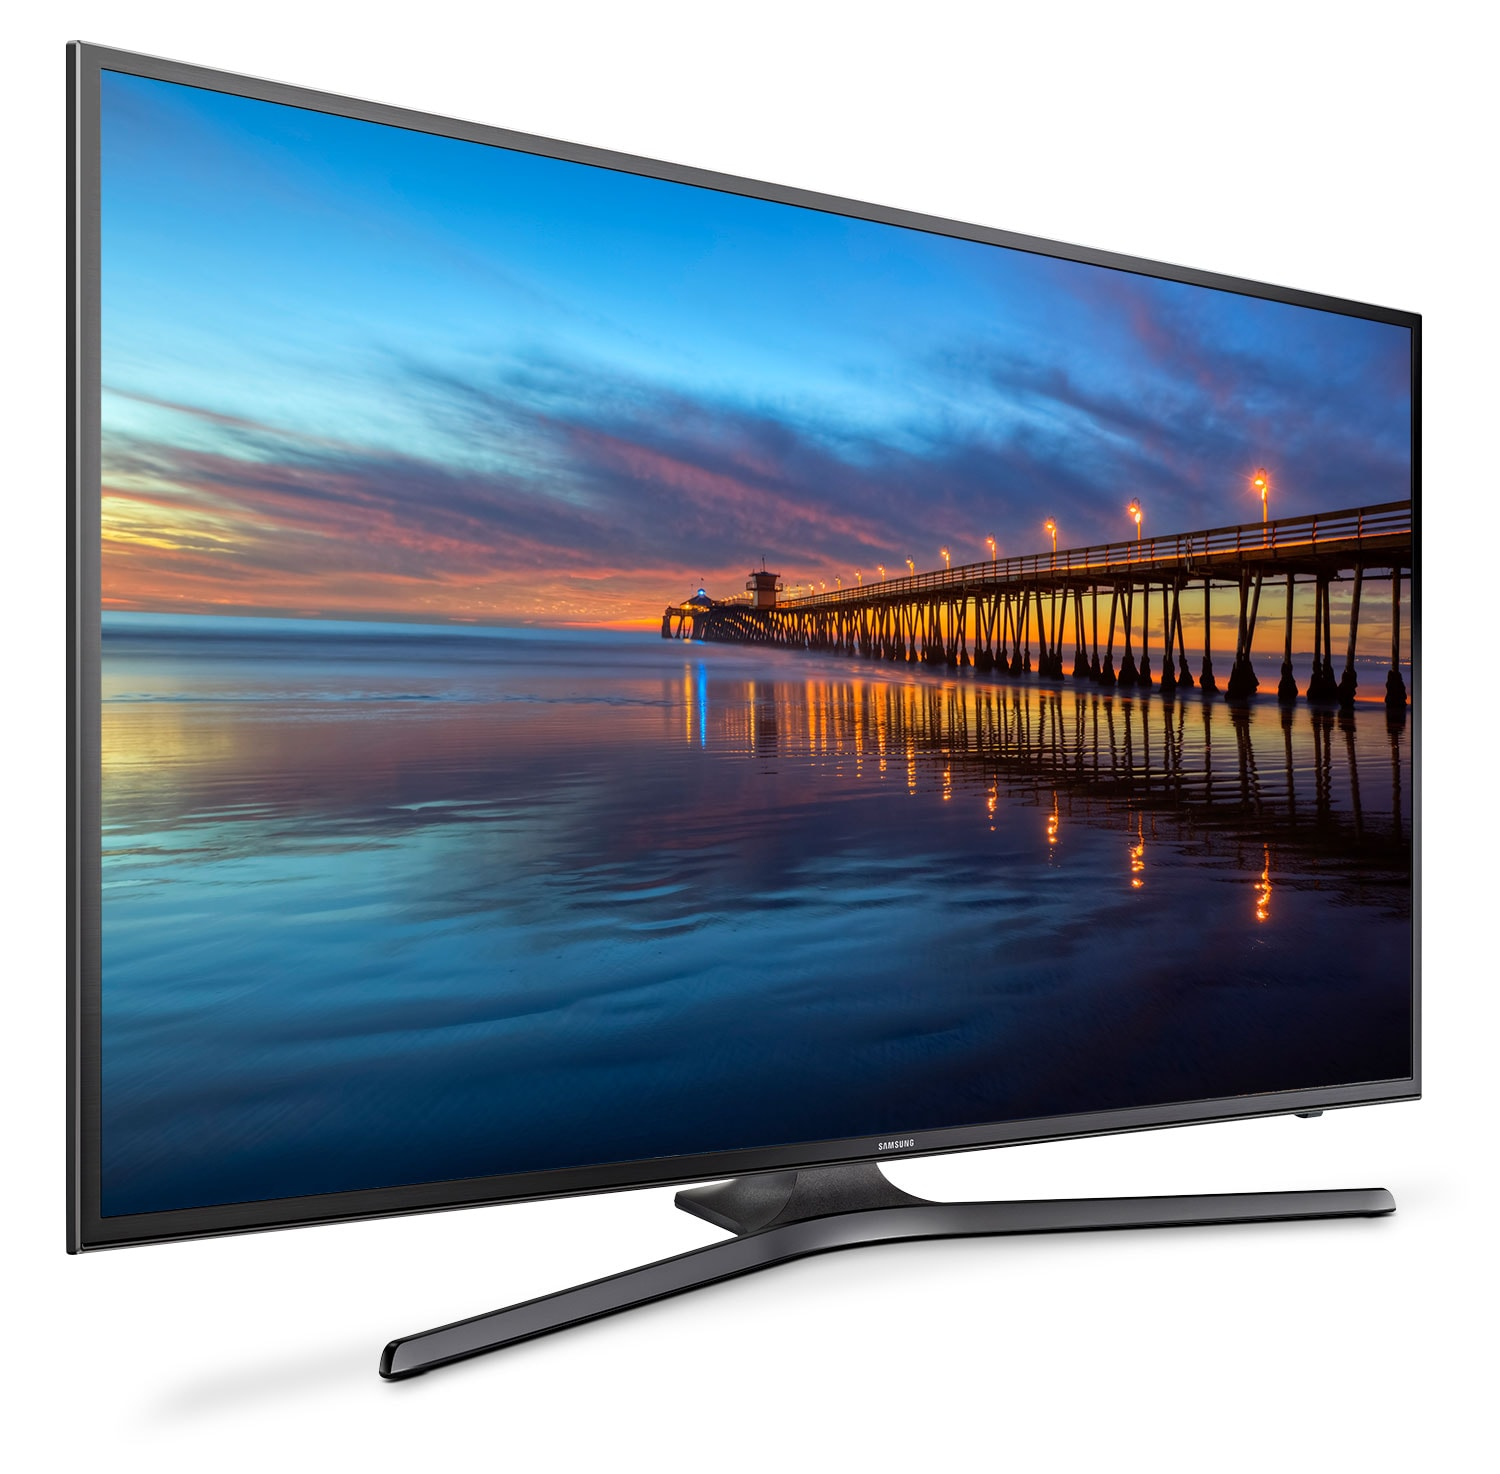 samsung 65 mu6300 4k uhd television the brick. Black Bedroom Furniture Sets. Home Design Ideas